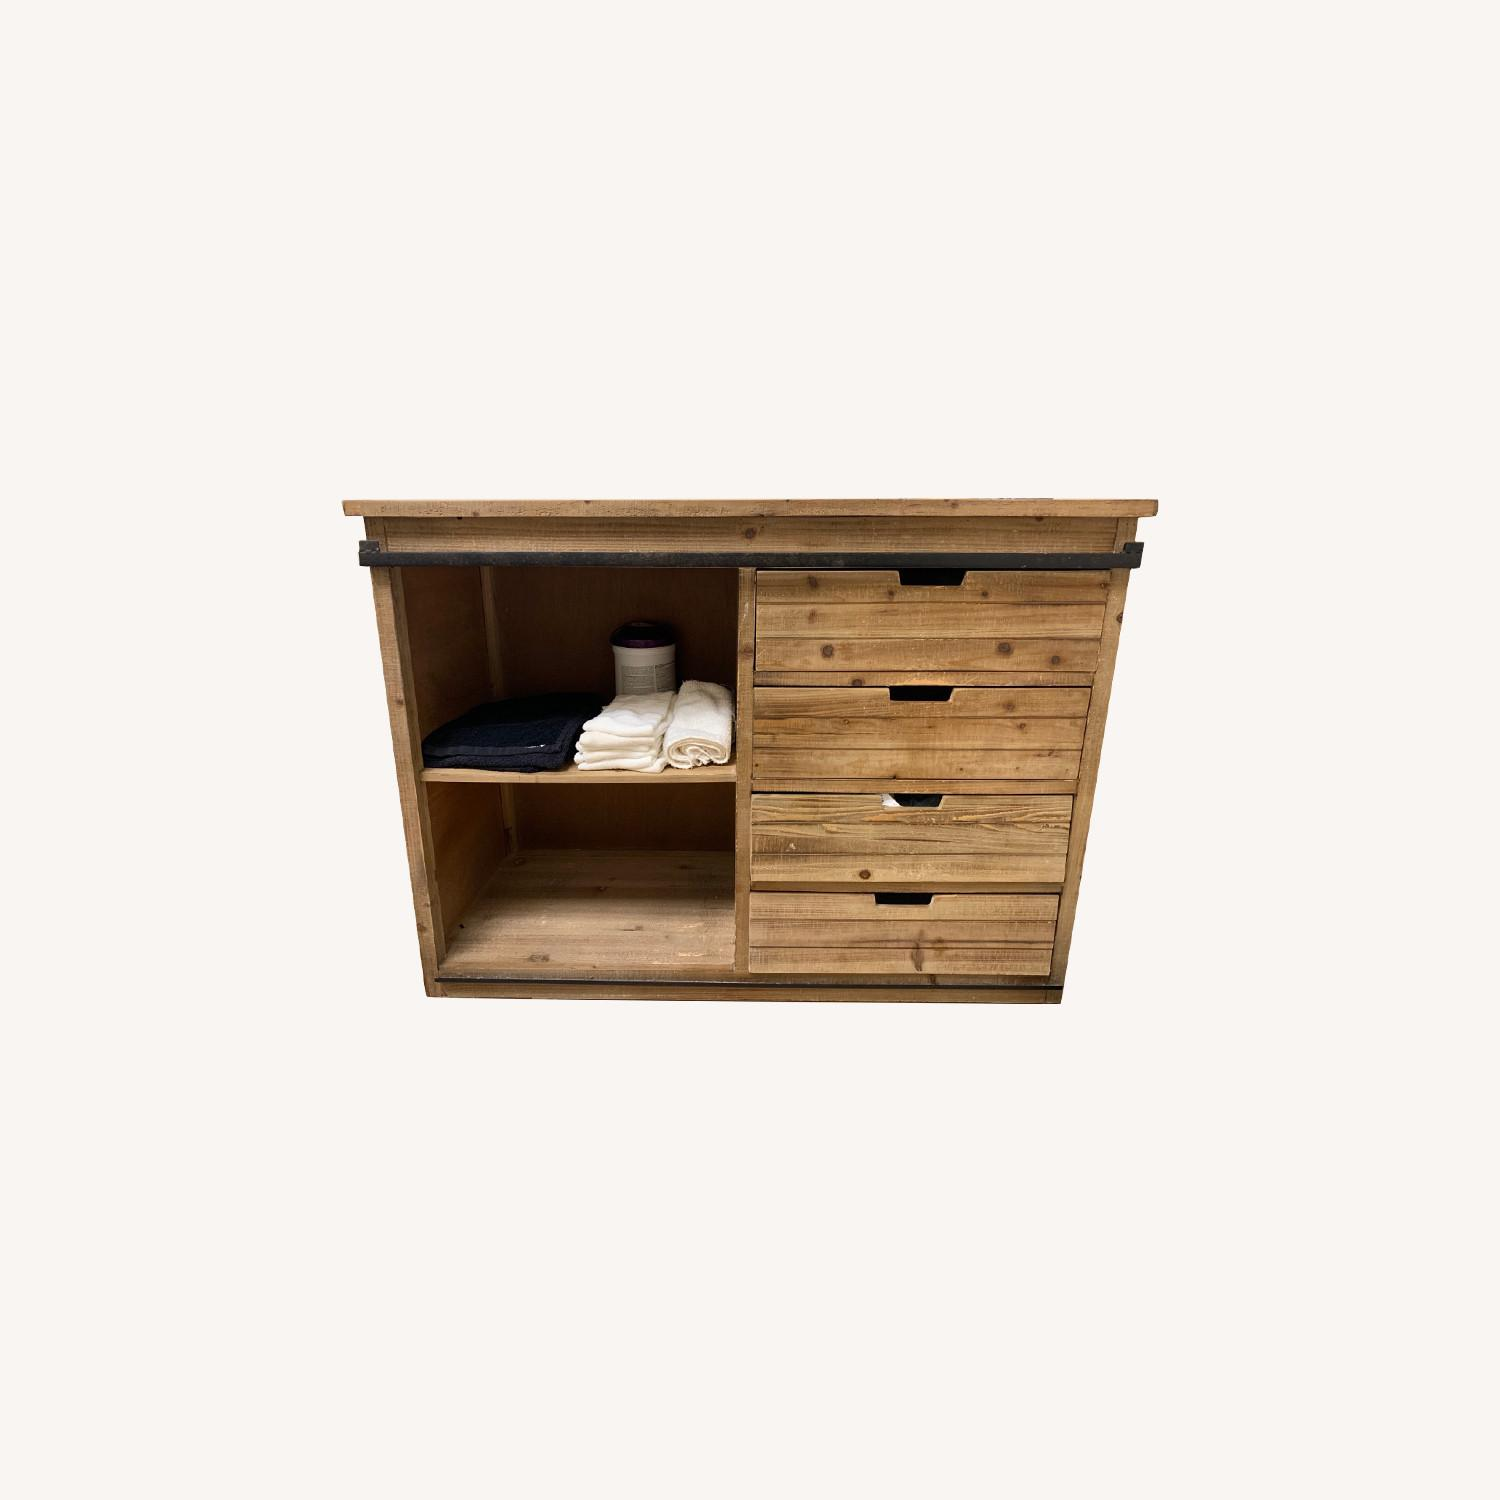 Wayfair Wood Credenza Cabinet with Metal Accent - image-0